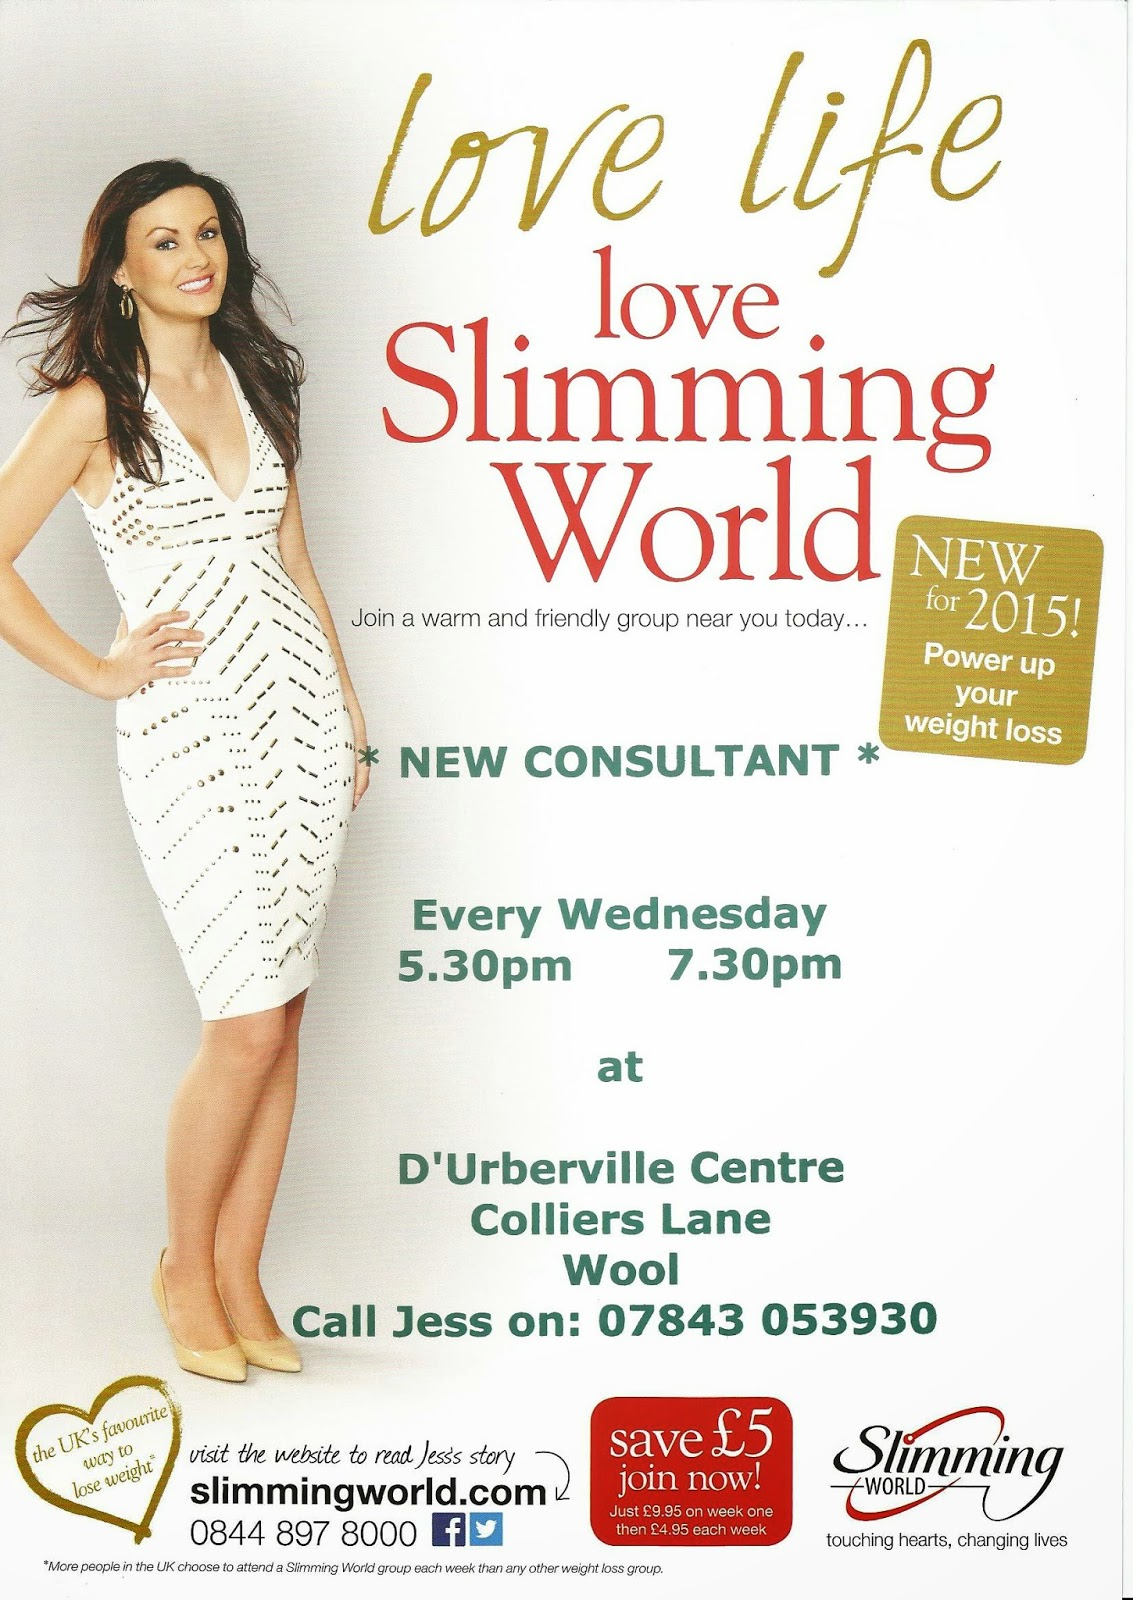 Bovington Hive Slimming World Classes Wool: slimming world slimming world